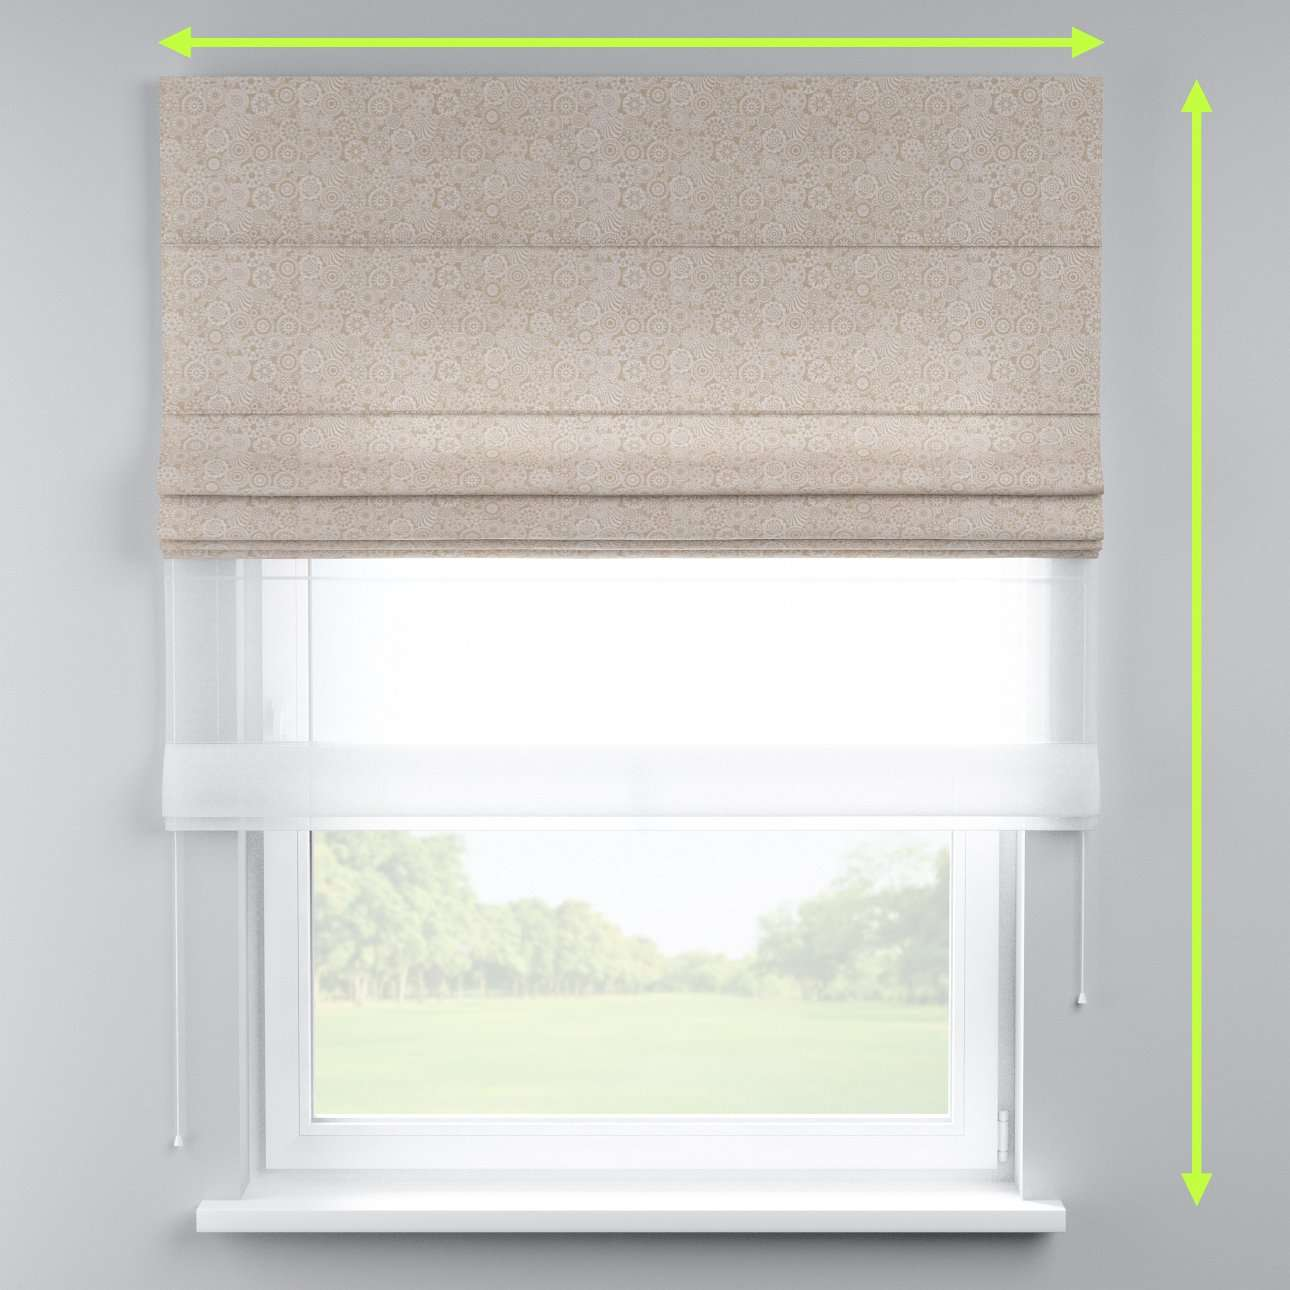 Voile and fabric roman blind (DUO II) in collection Flowers, fabric: 311-09